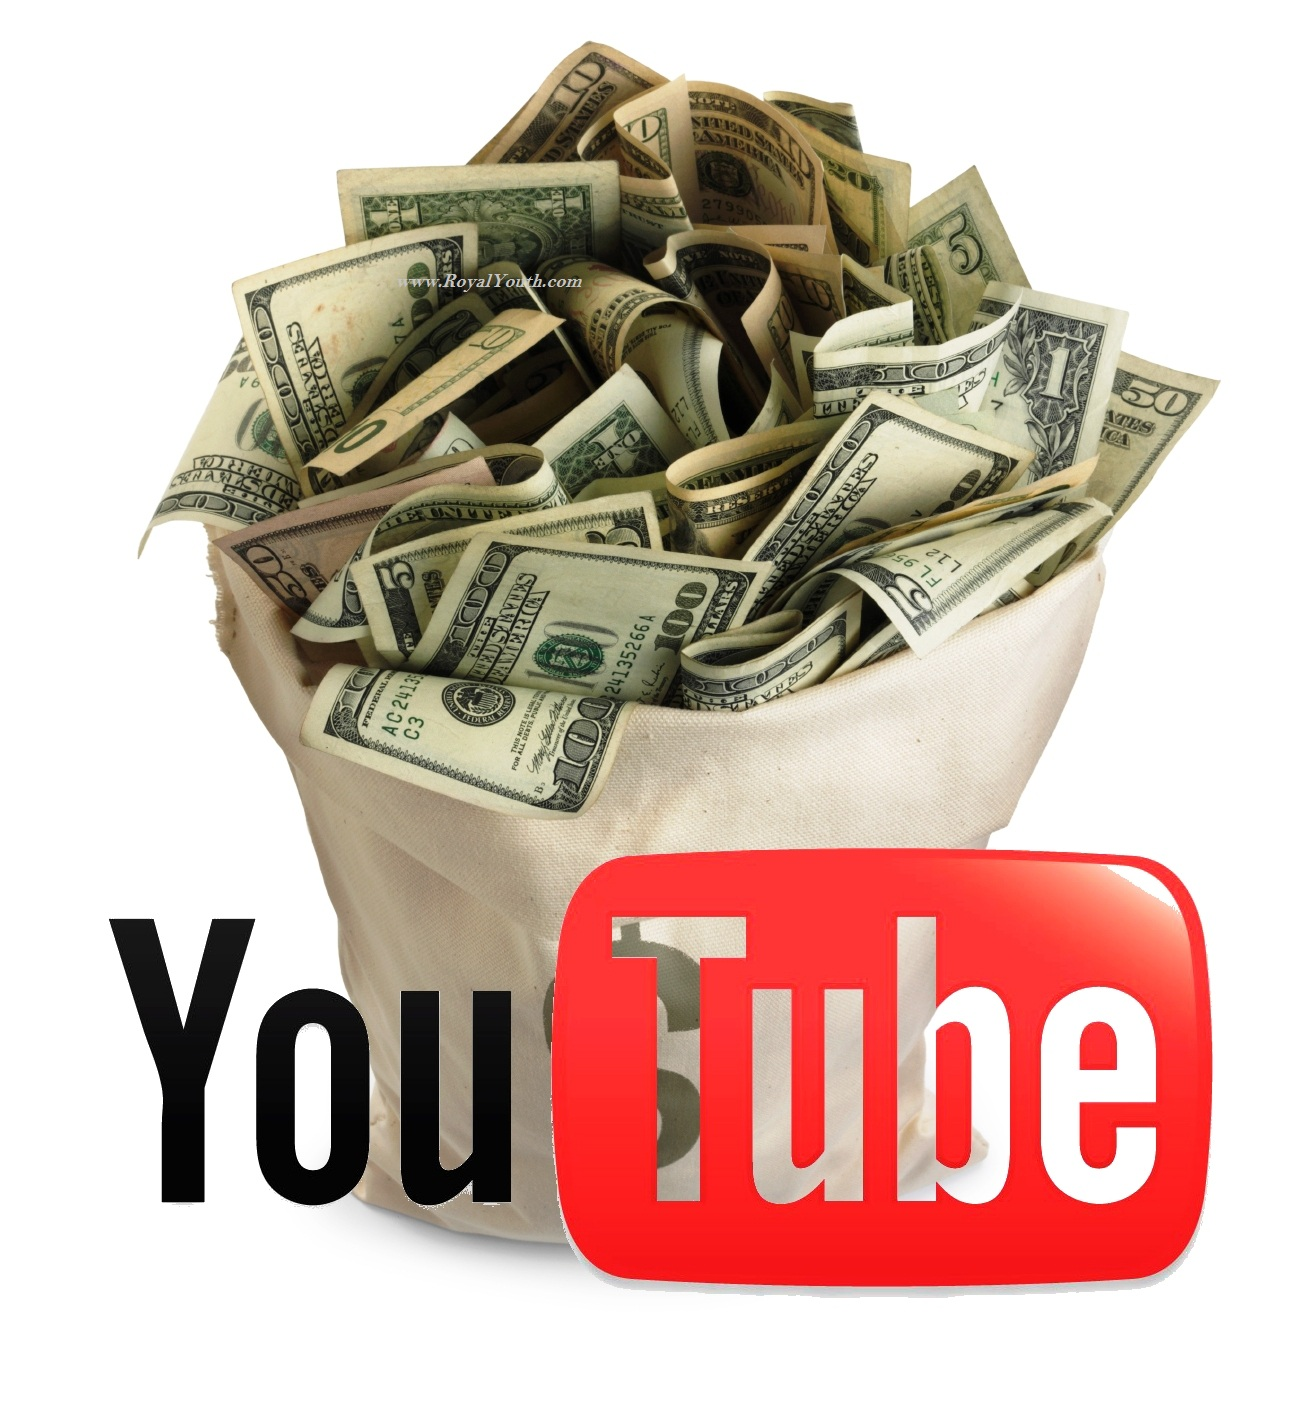 YouTube pay-per-view service